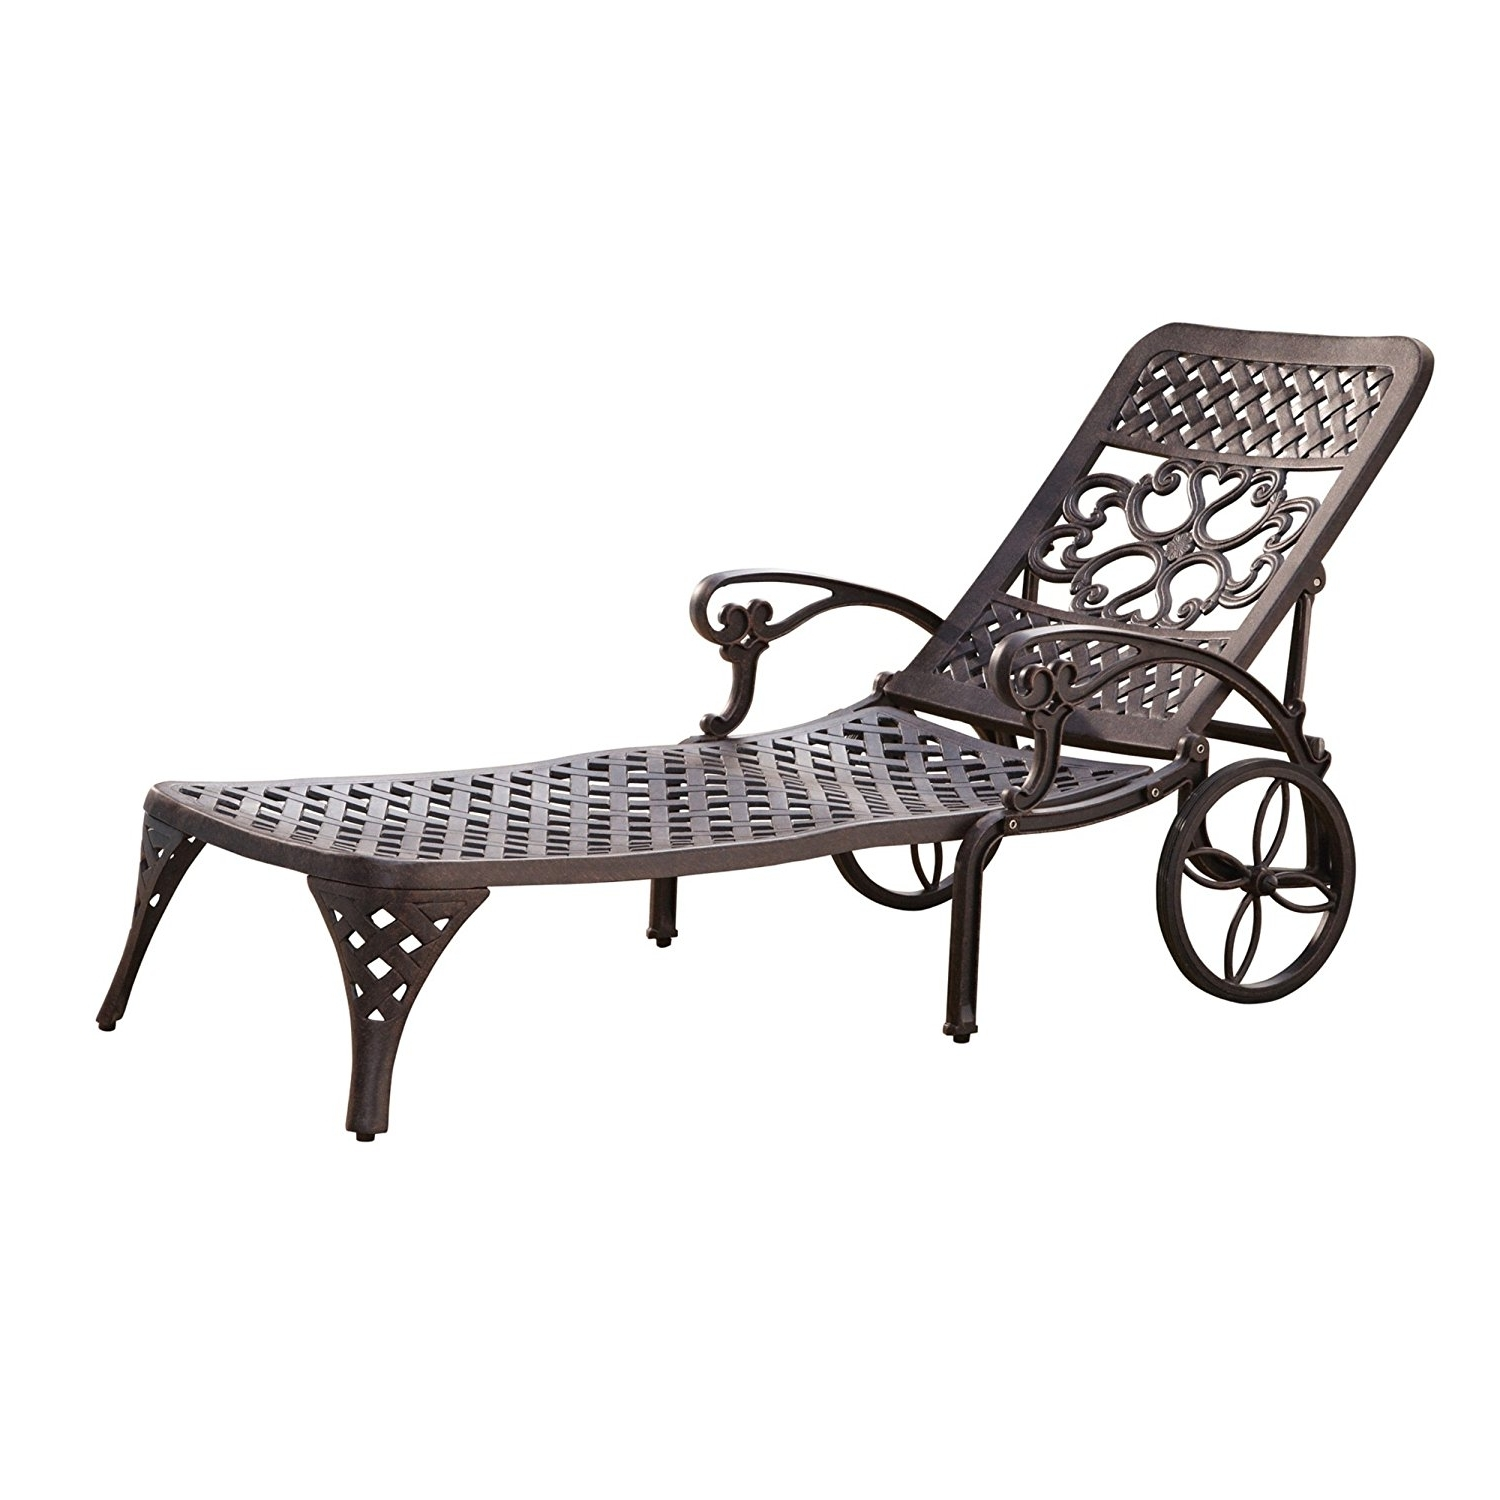 15 Best Ideas Of Outdoor Chaise Lounge Chairs